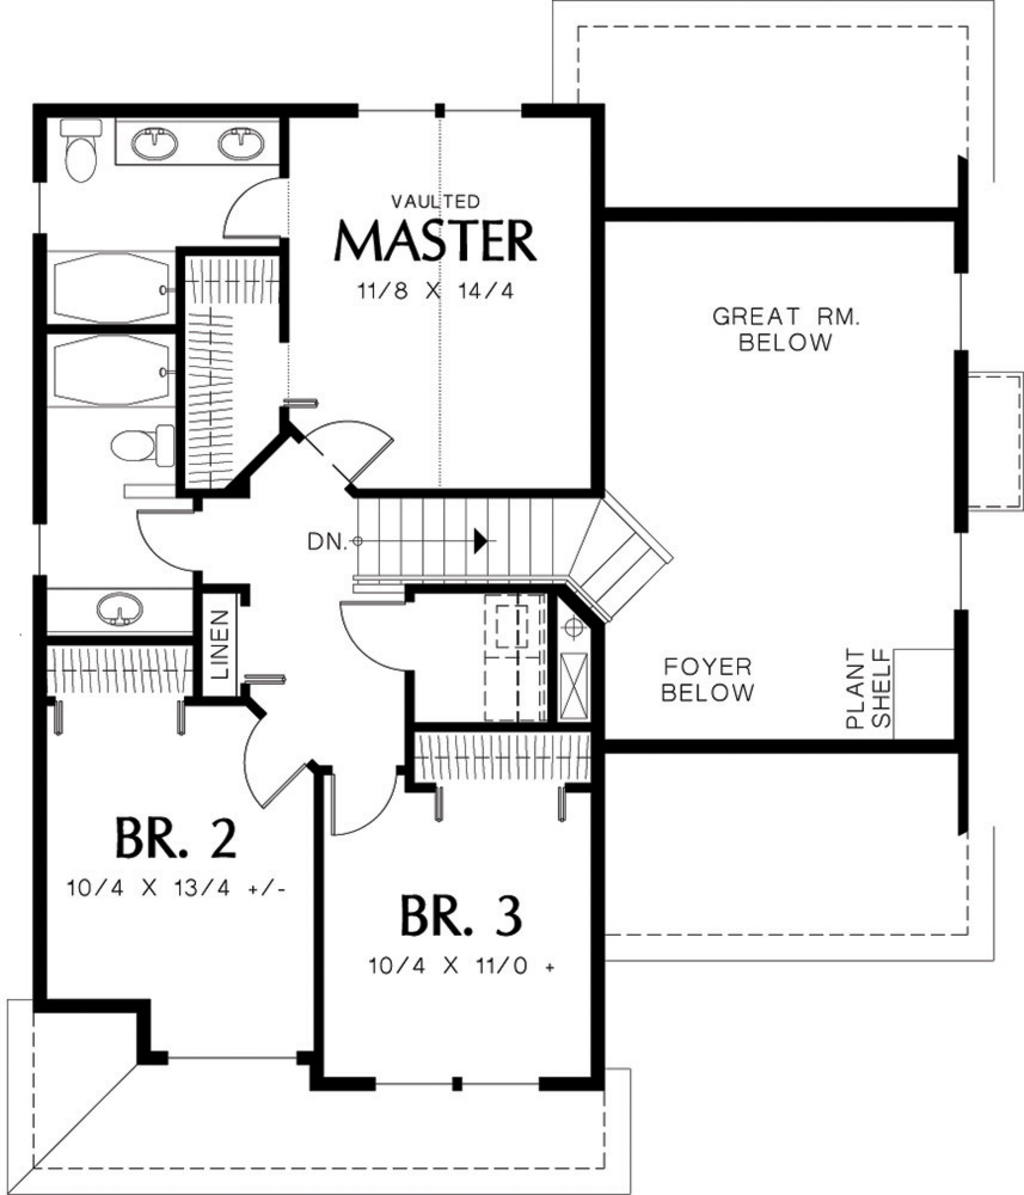 House for 1500 Sq FT Floor Plans 1500 Sq Ft. House Plans